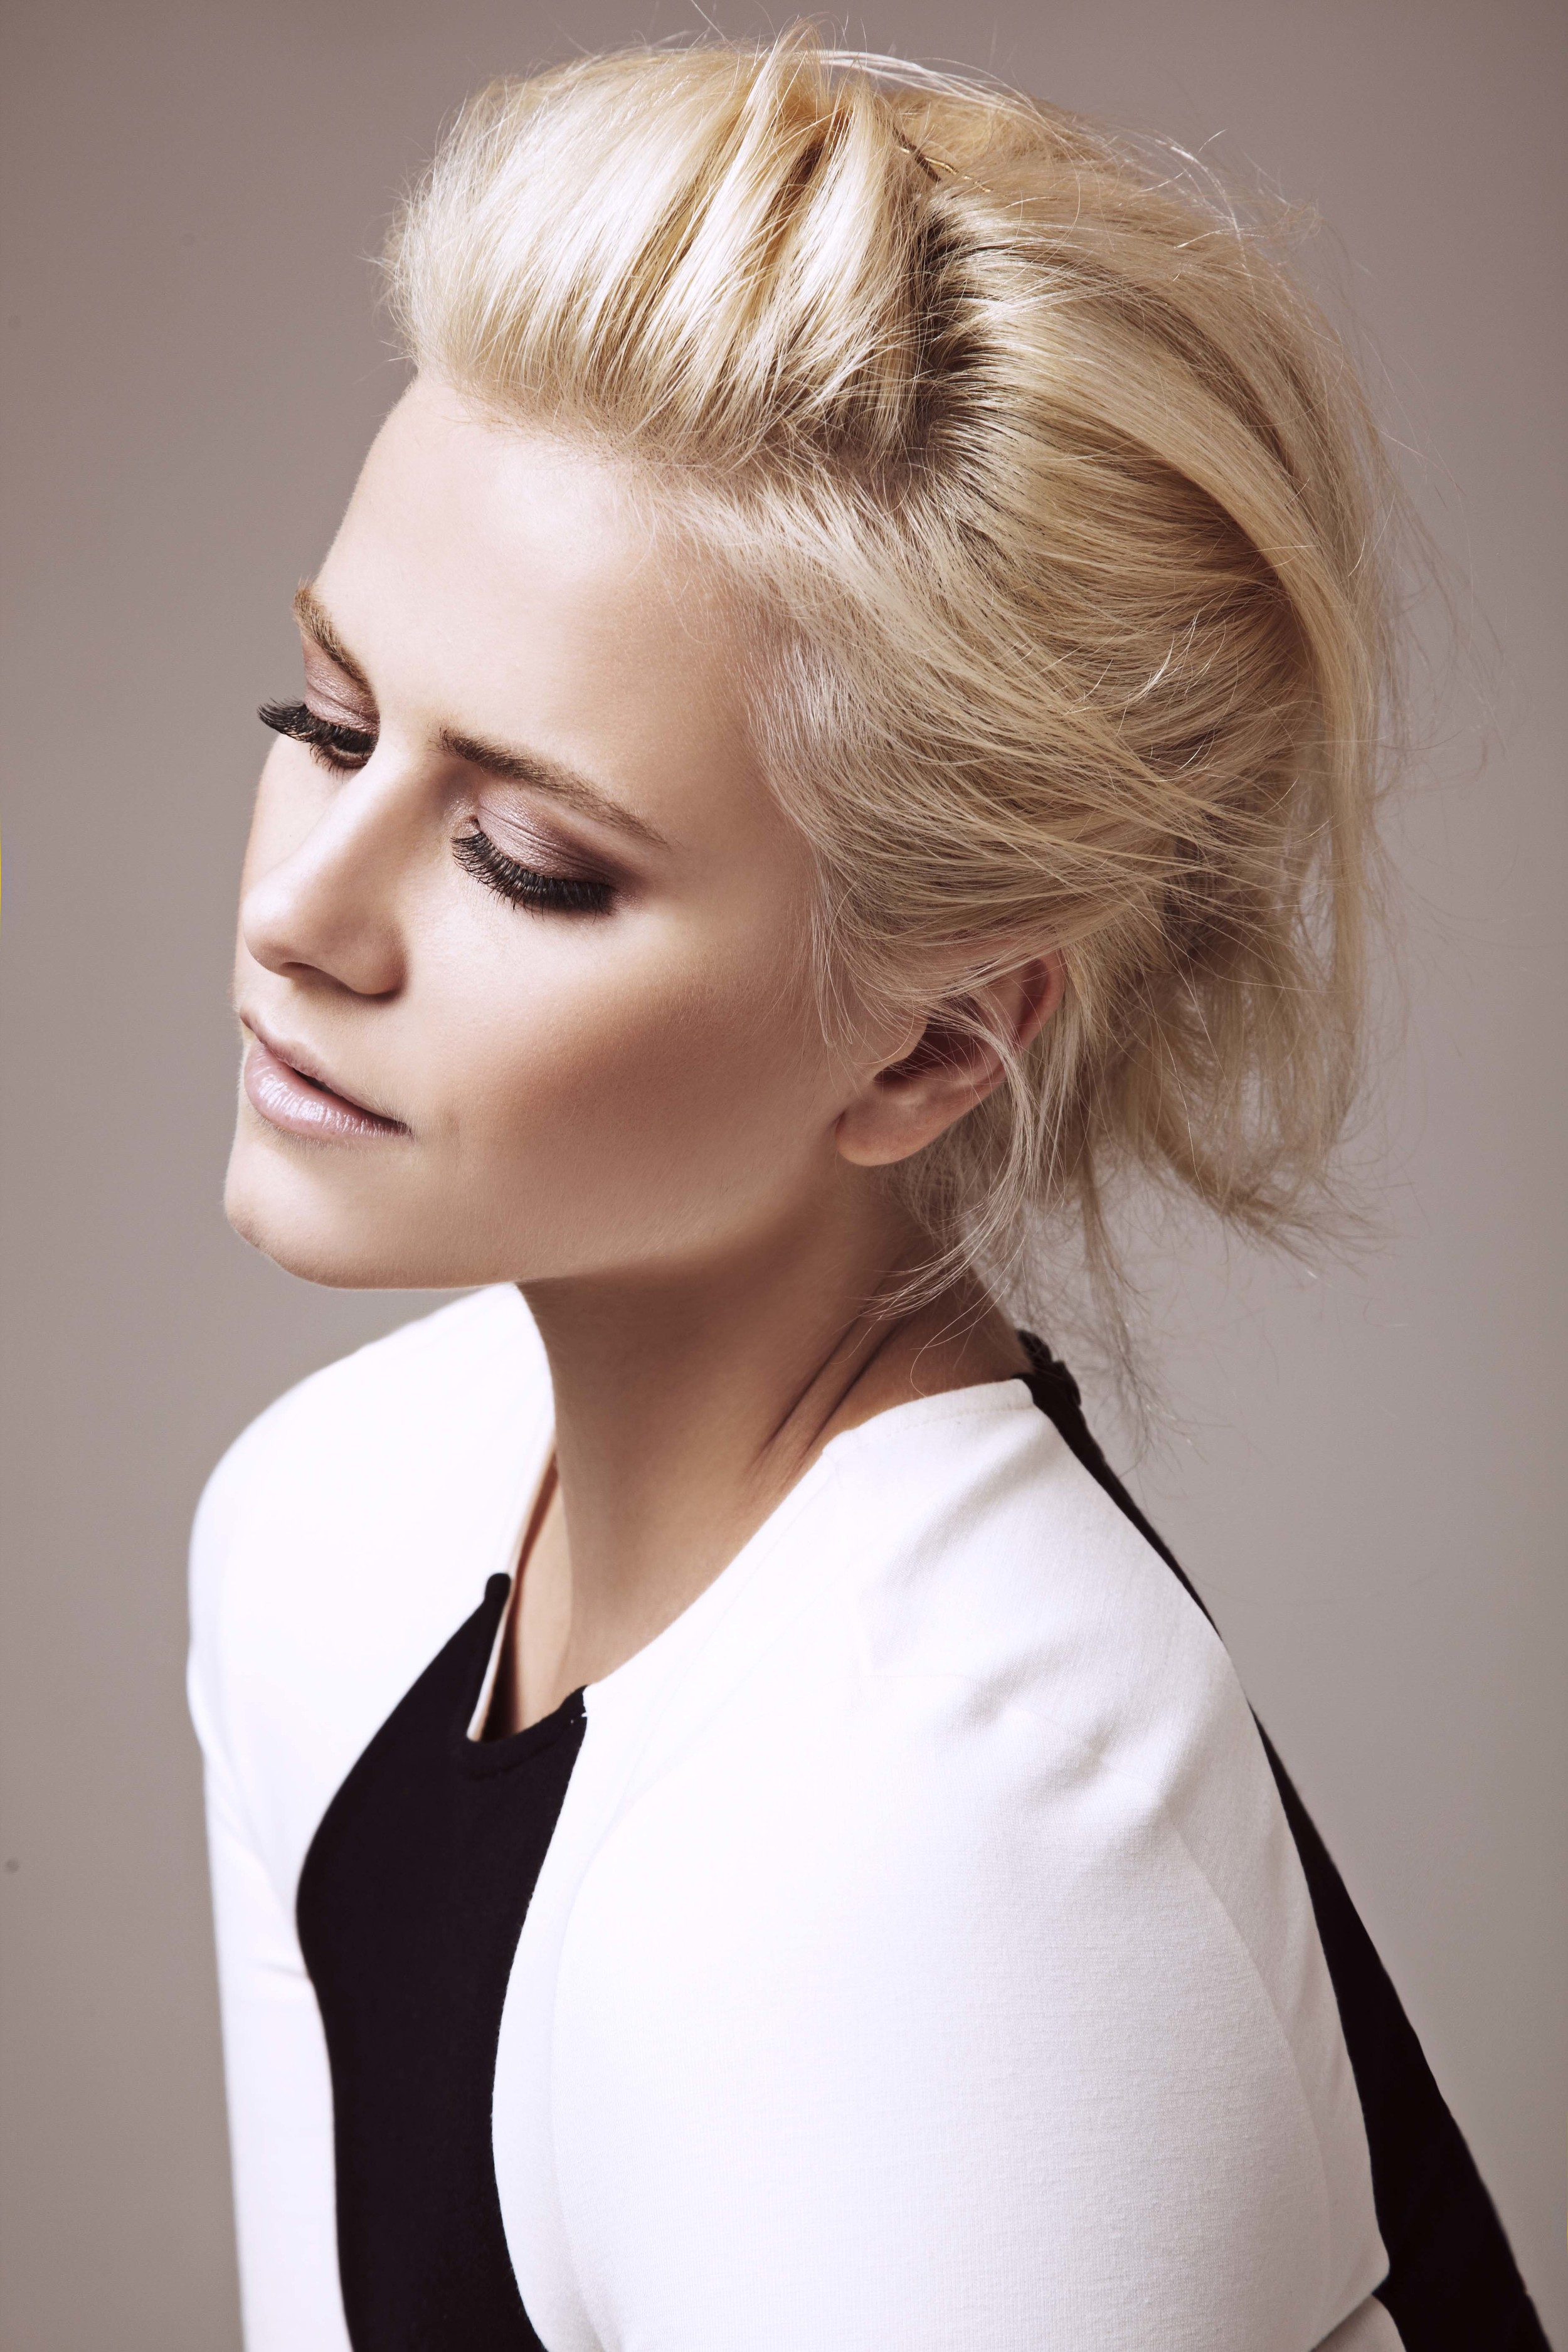 TRACEY LEE LASHWEAR - perfect for the bride on her special day or for an everyday natural lash look.